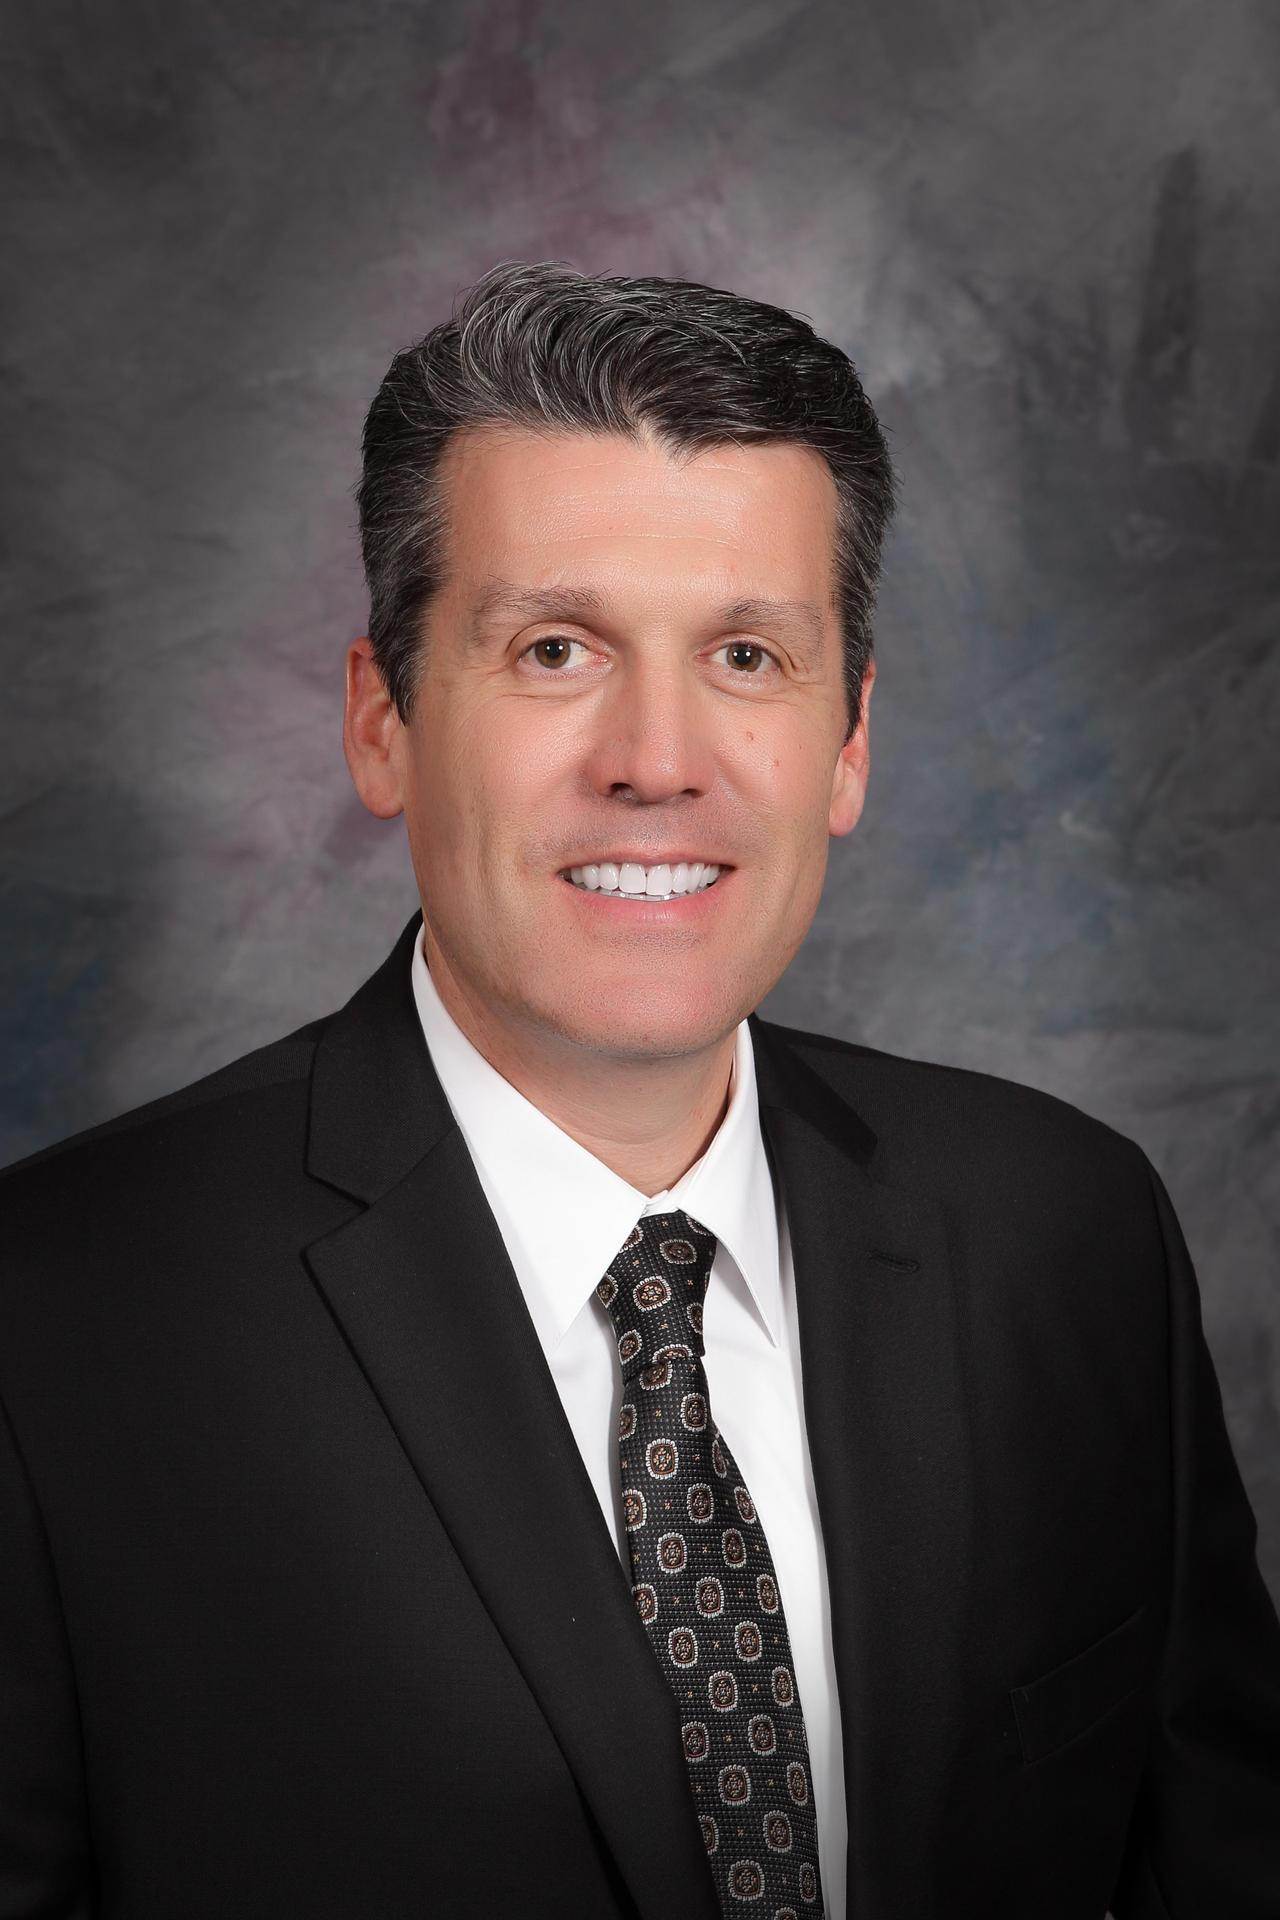 Image of Mike Kuhlman, Deputy Superintendent